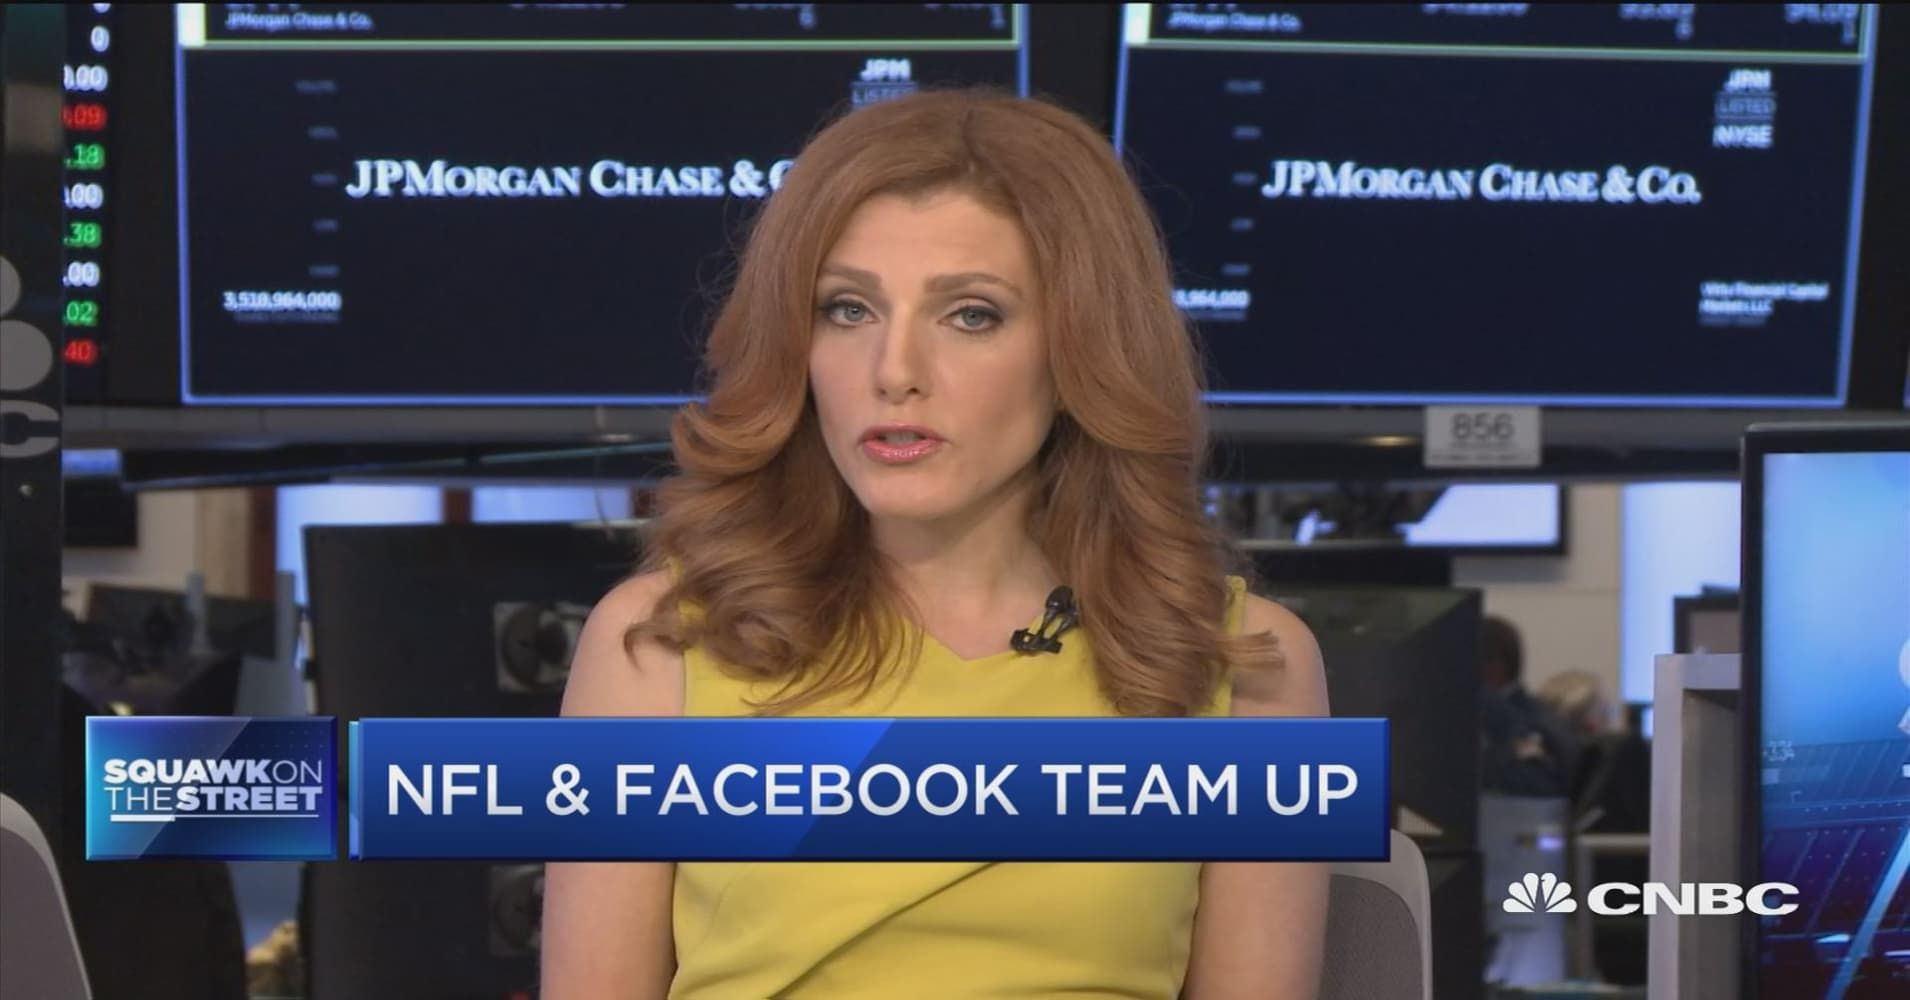 NFL to publish highlight videos and game recaps on Facebook f76afde6c